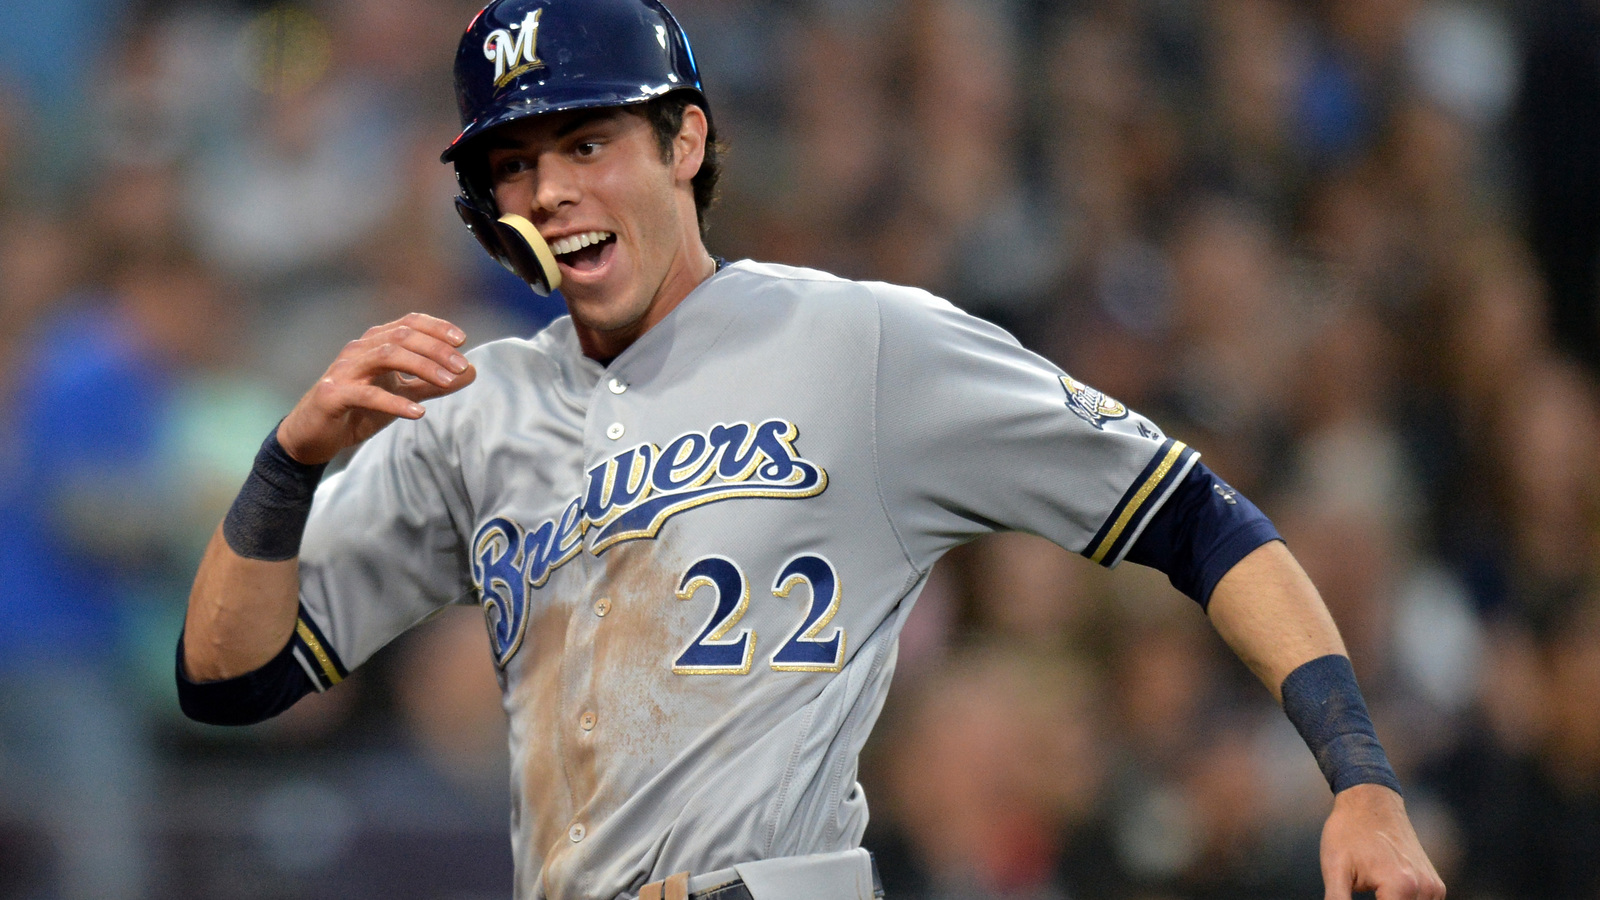 Christian Yelich to miss game with oblique stiffness ... Christian Yelich